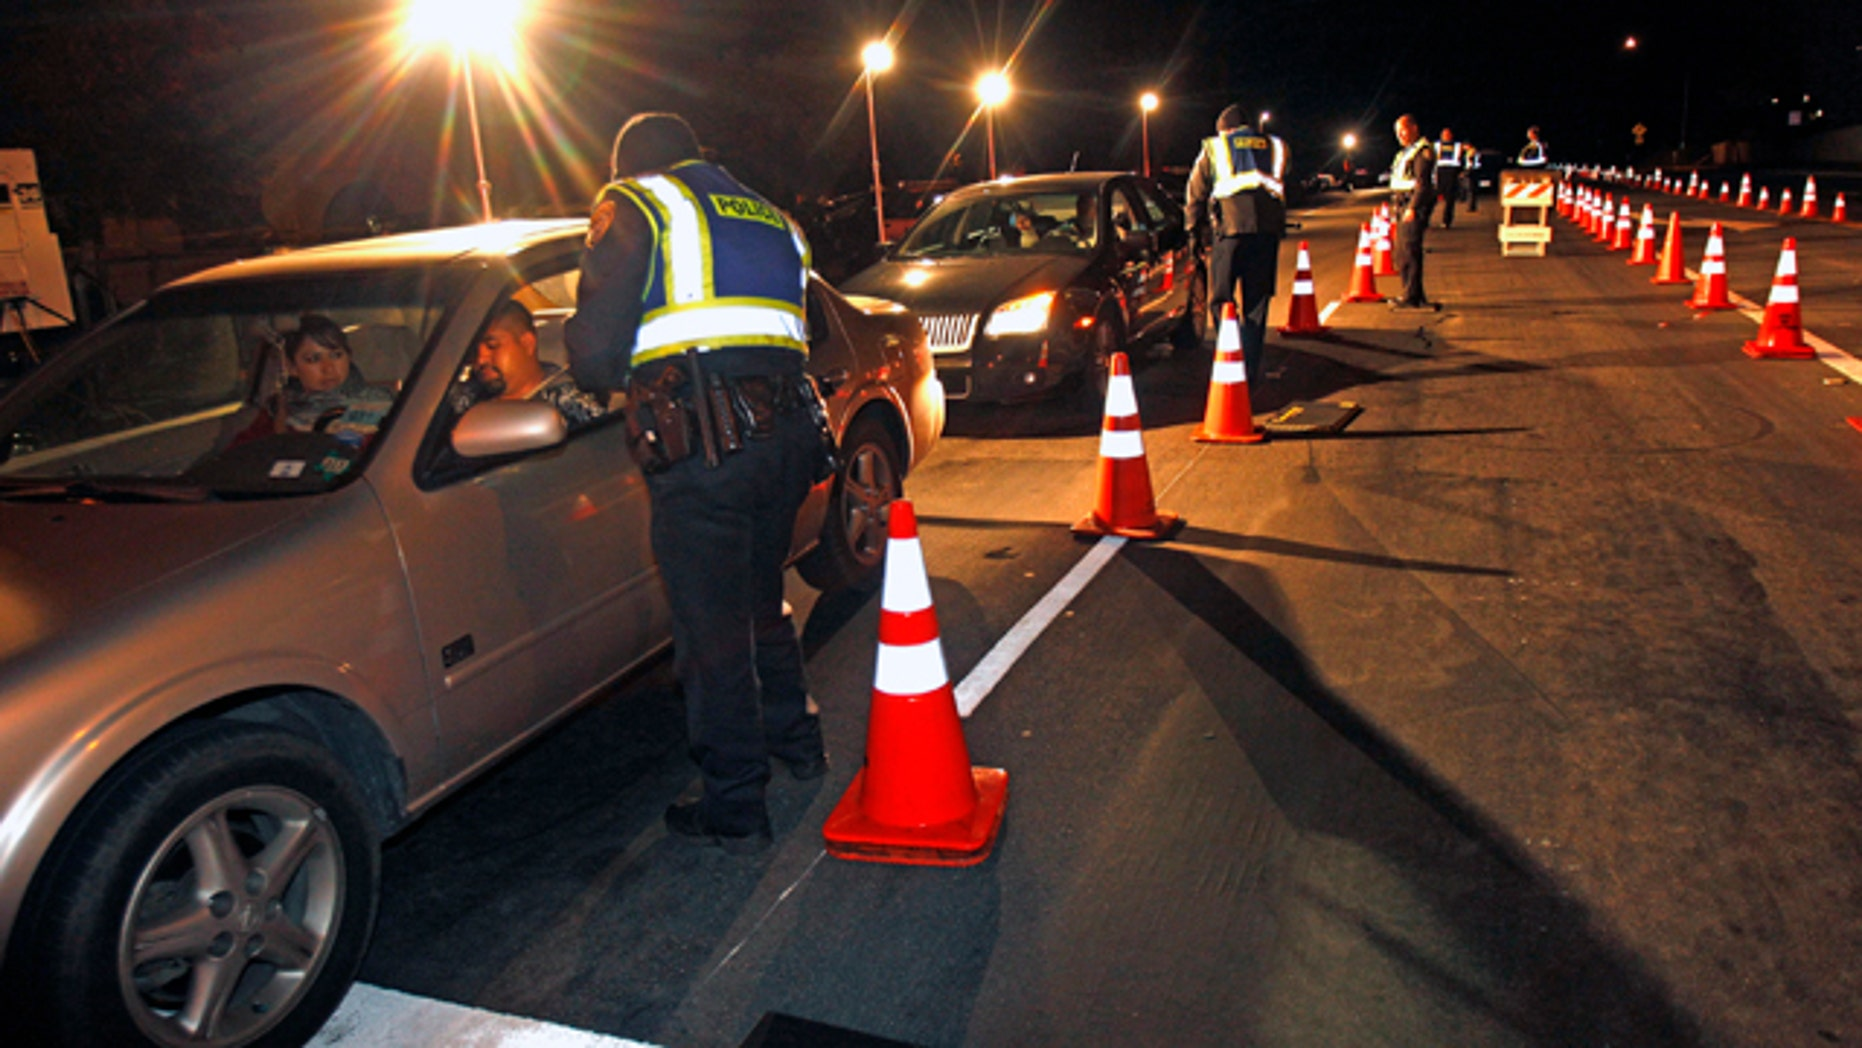 Dec. 16, 2011: Police officers check drivers at a sobriety checkpoint in Escondido, Calif.